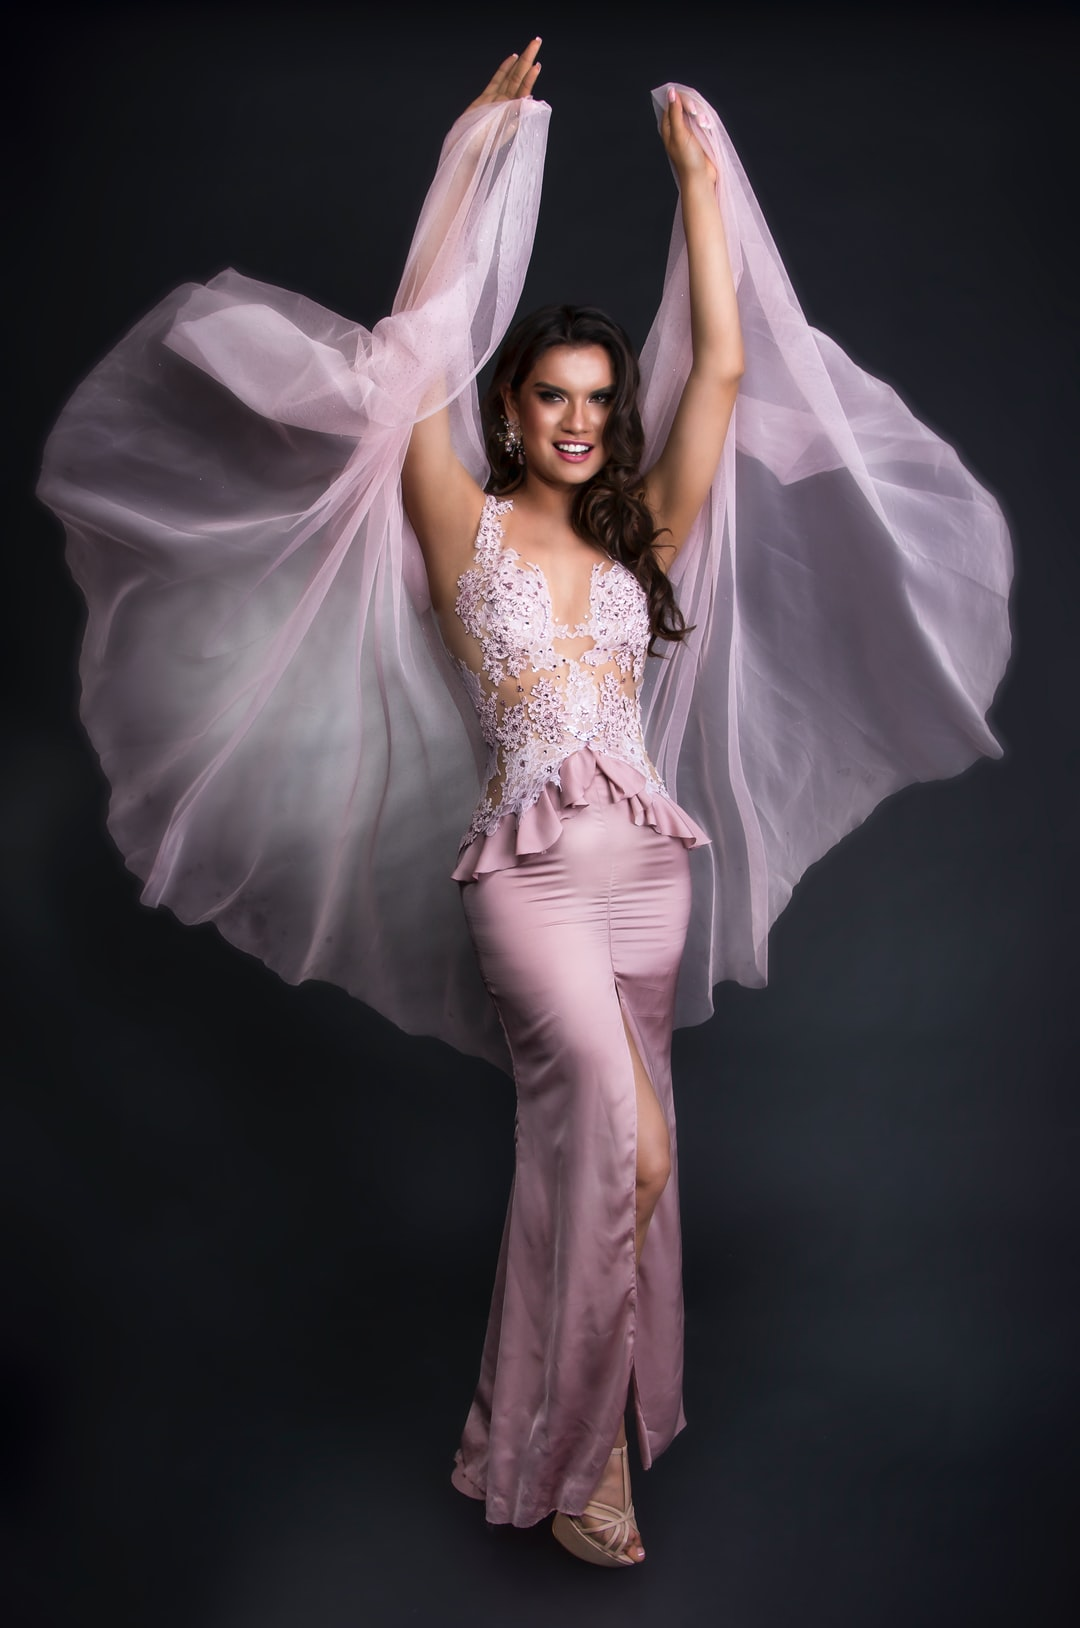 Woman in pink gala dress on black background